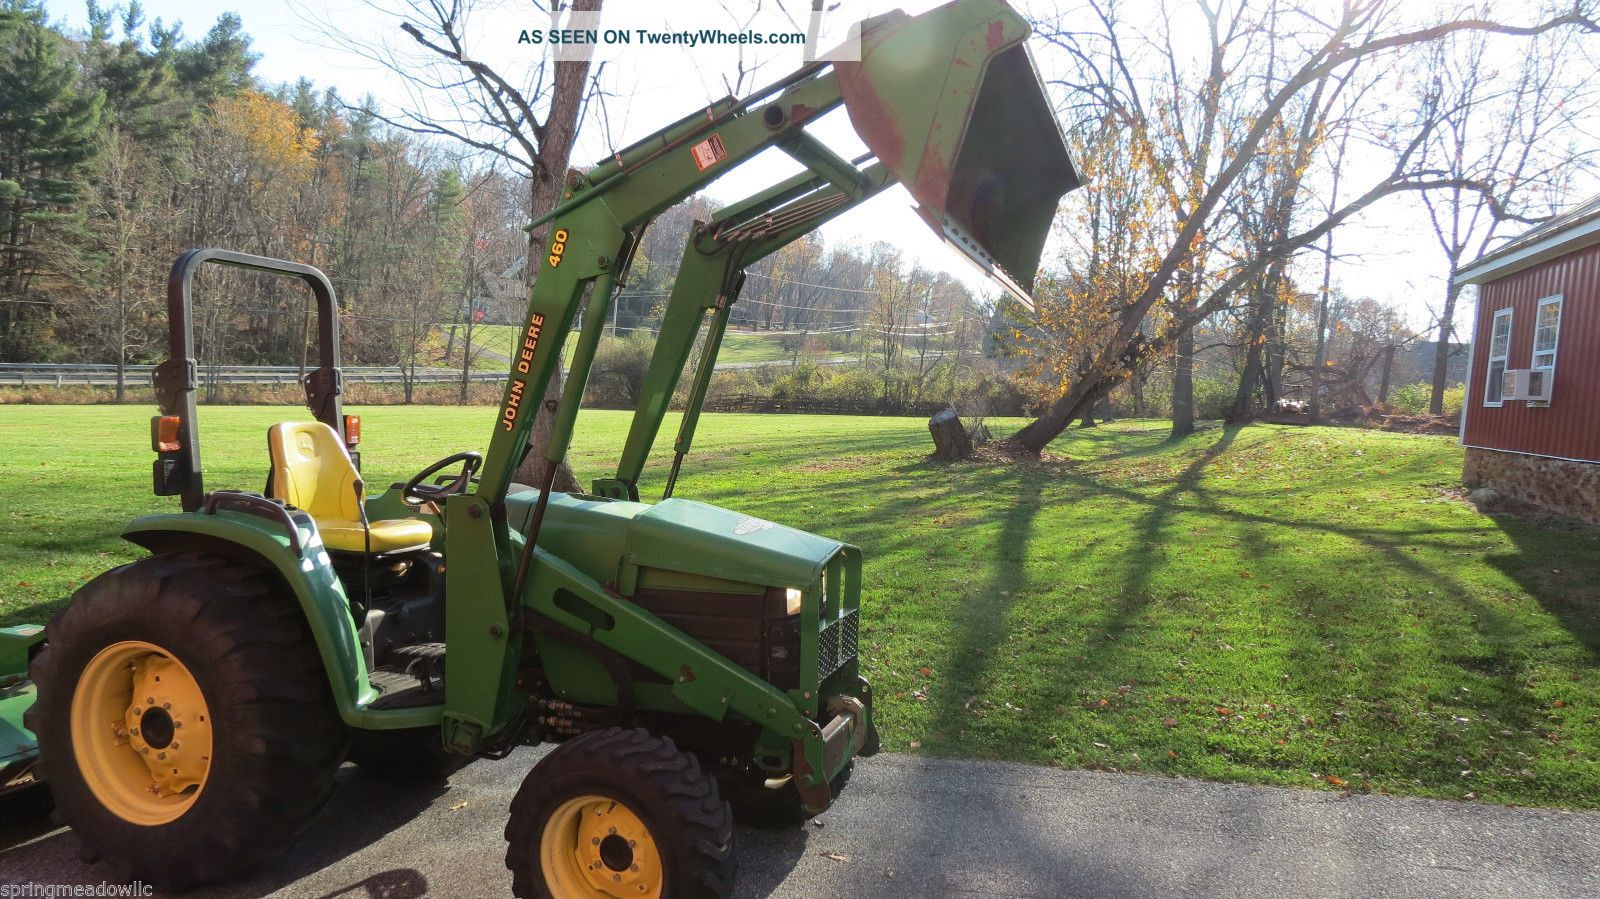 2003 John Deere 4610 4x4 Compact Tractor W/ Loader Hydrostatic 43 Hp ...